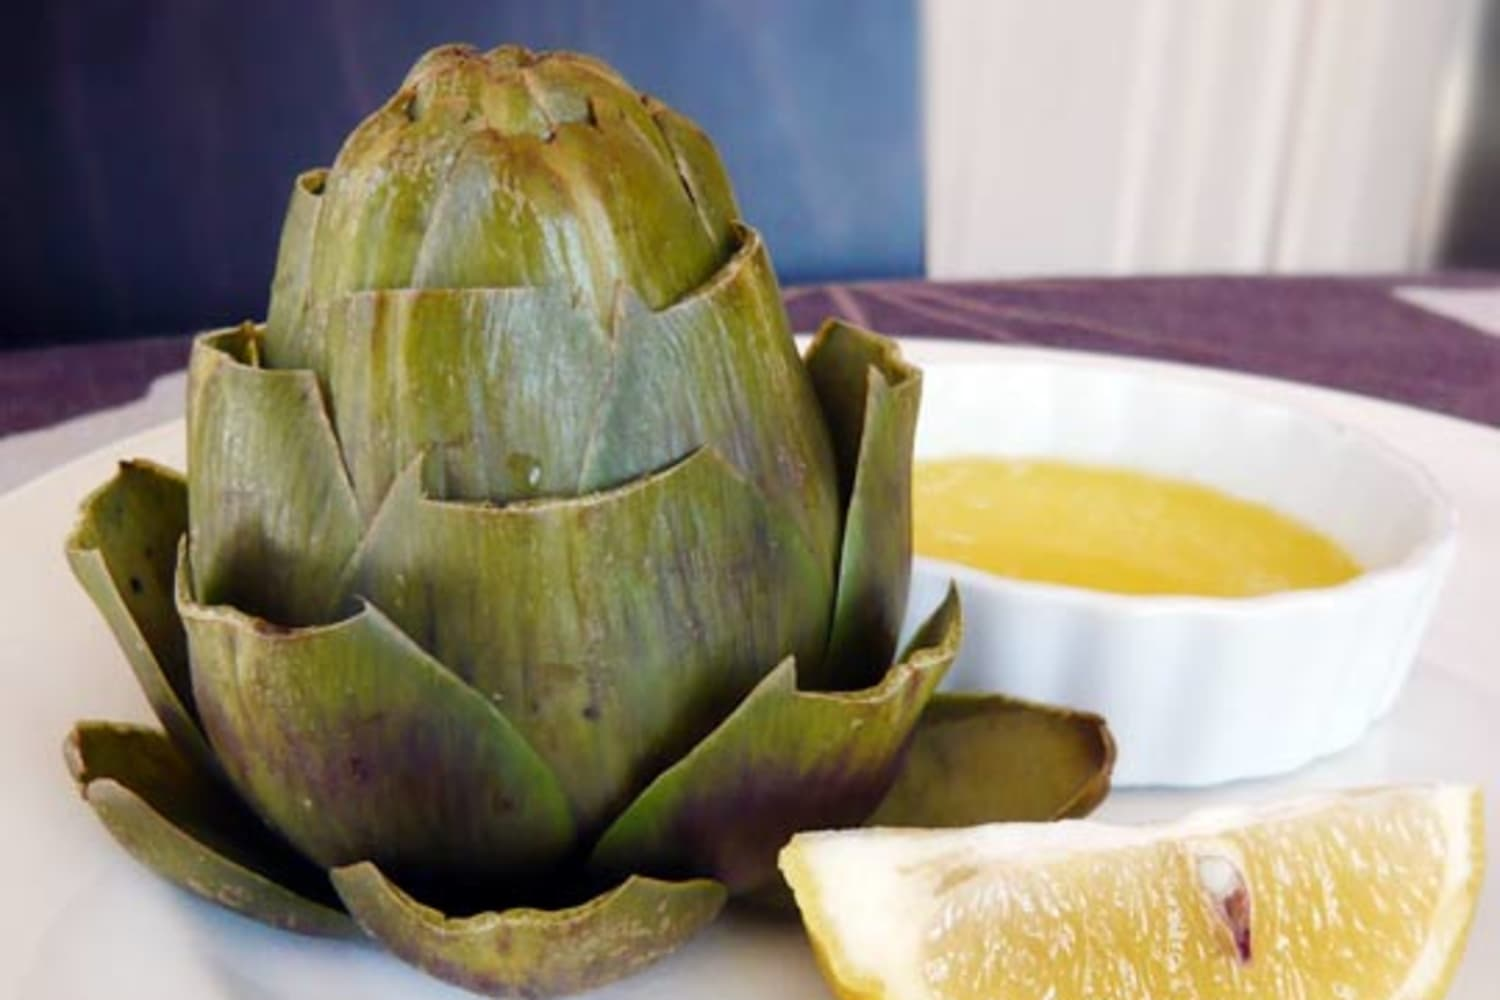 How I Used an Artichoke to Teach My Children About Mindful Eating